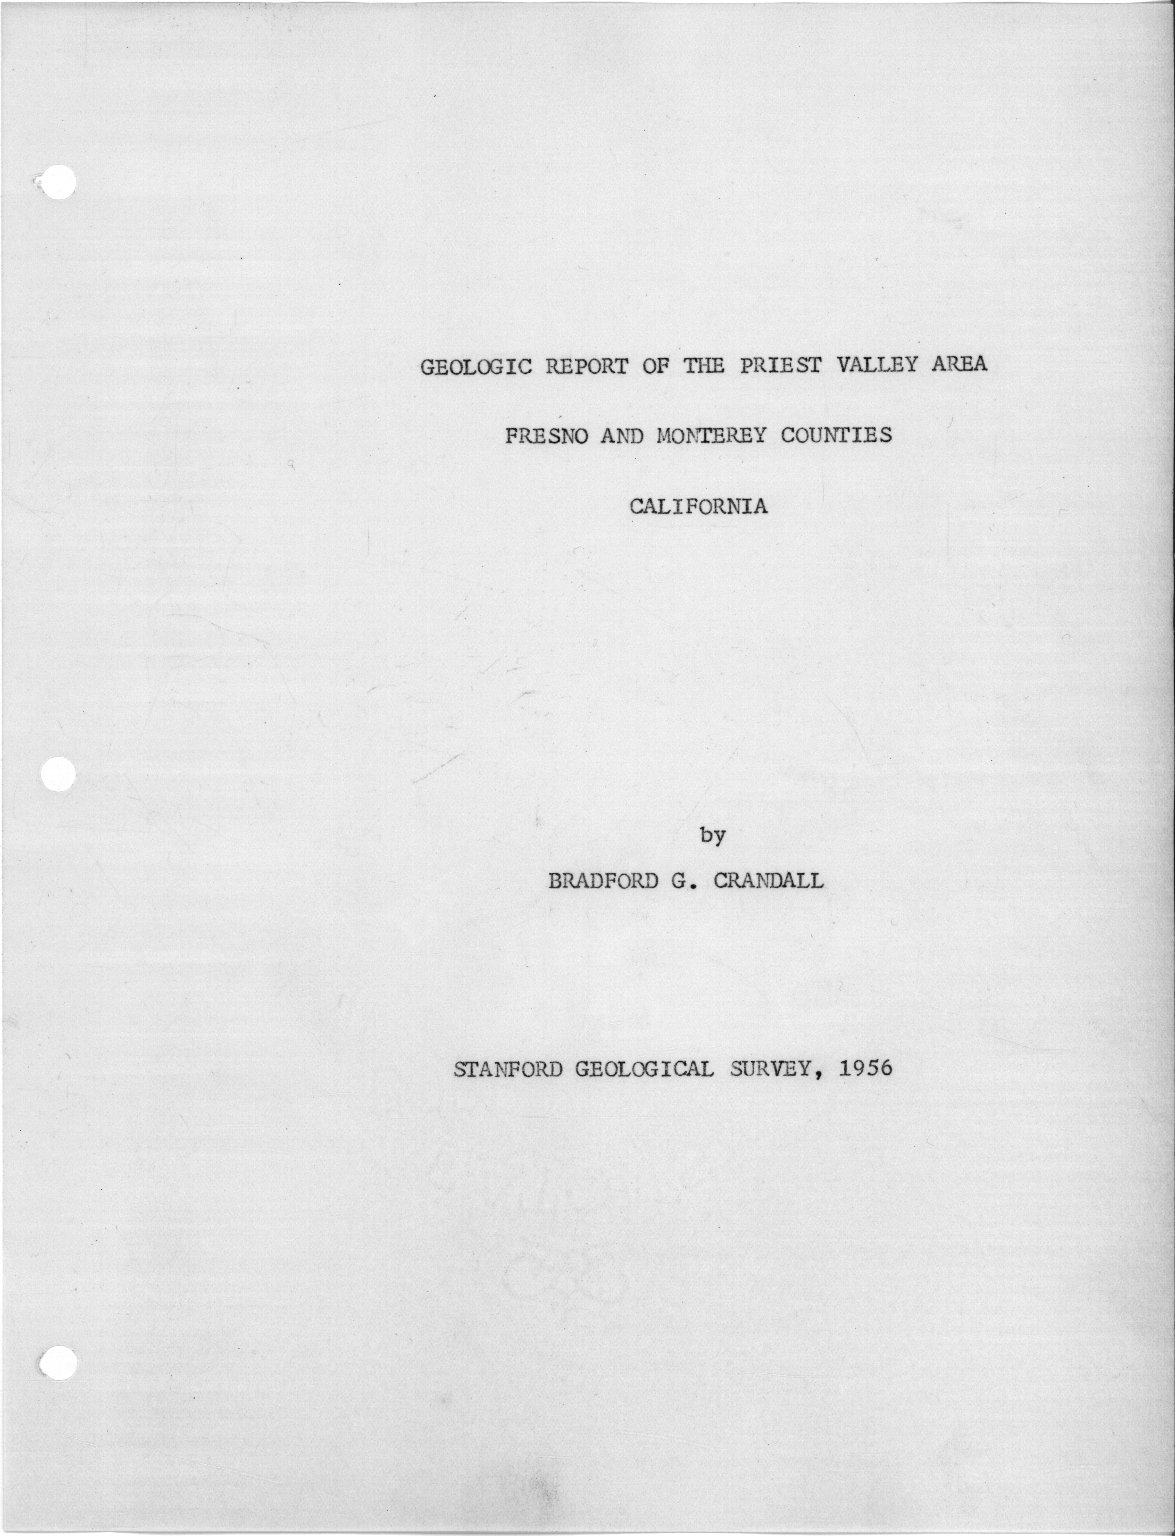 Geologic report of the Priest Valley area, Fresno and Monterey counties, California